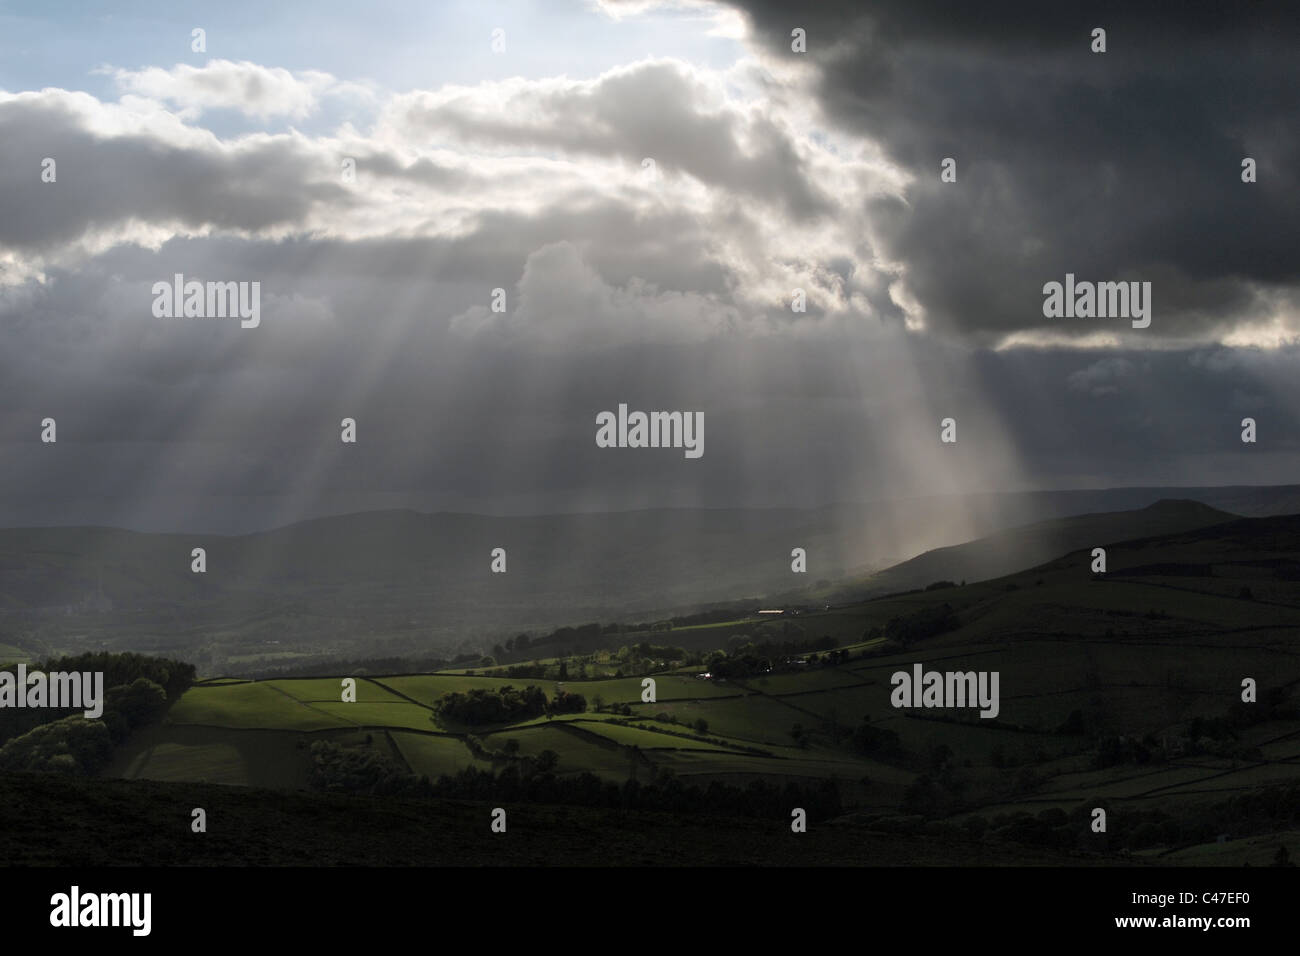 beautiful sunburst sun rays bursting through clouds shines light over the countryside in the Peak District Derbyshire - Stock Image